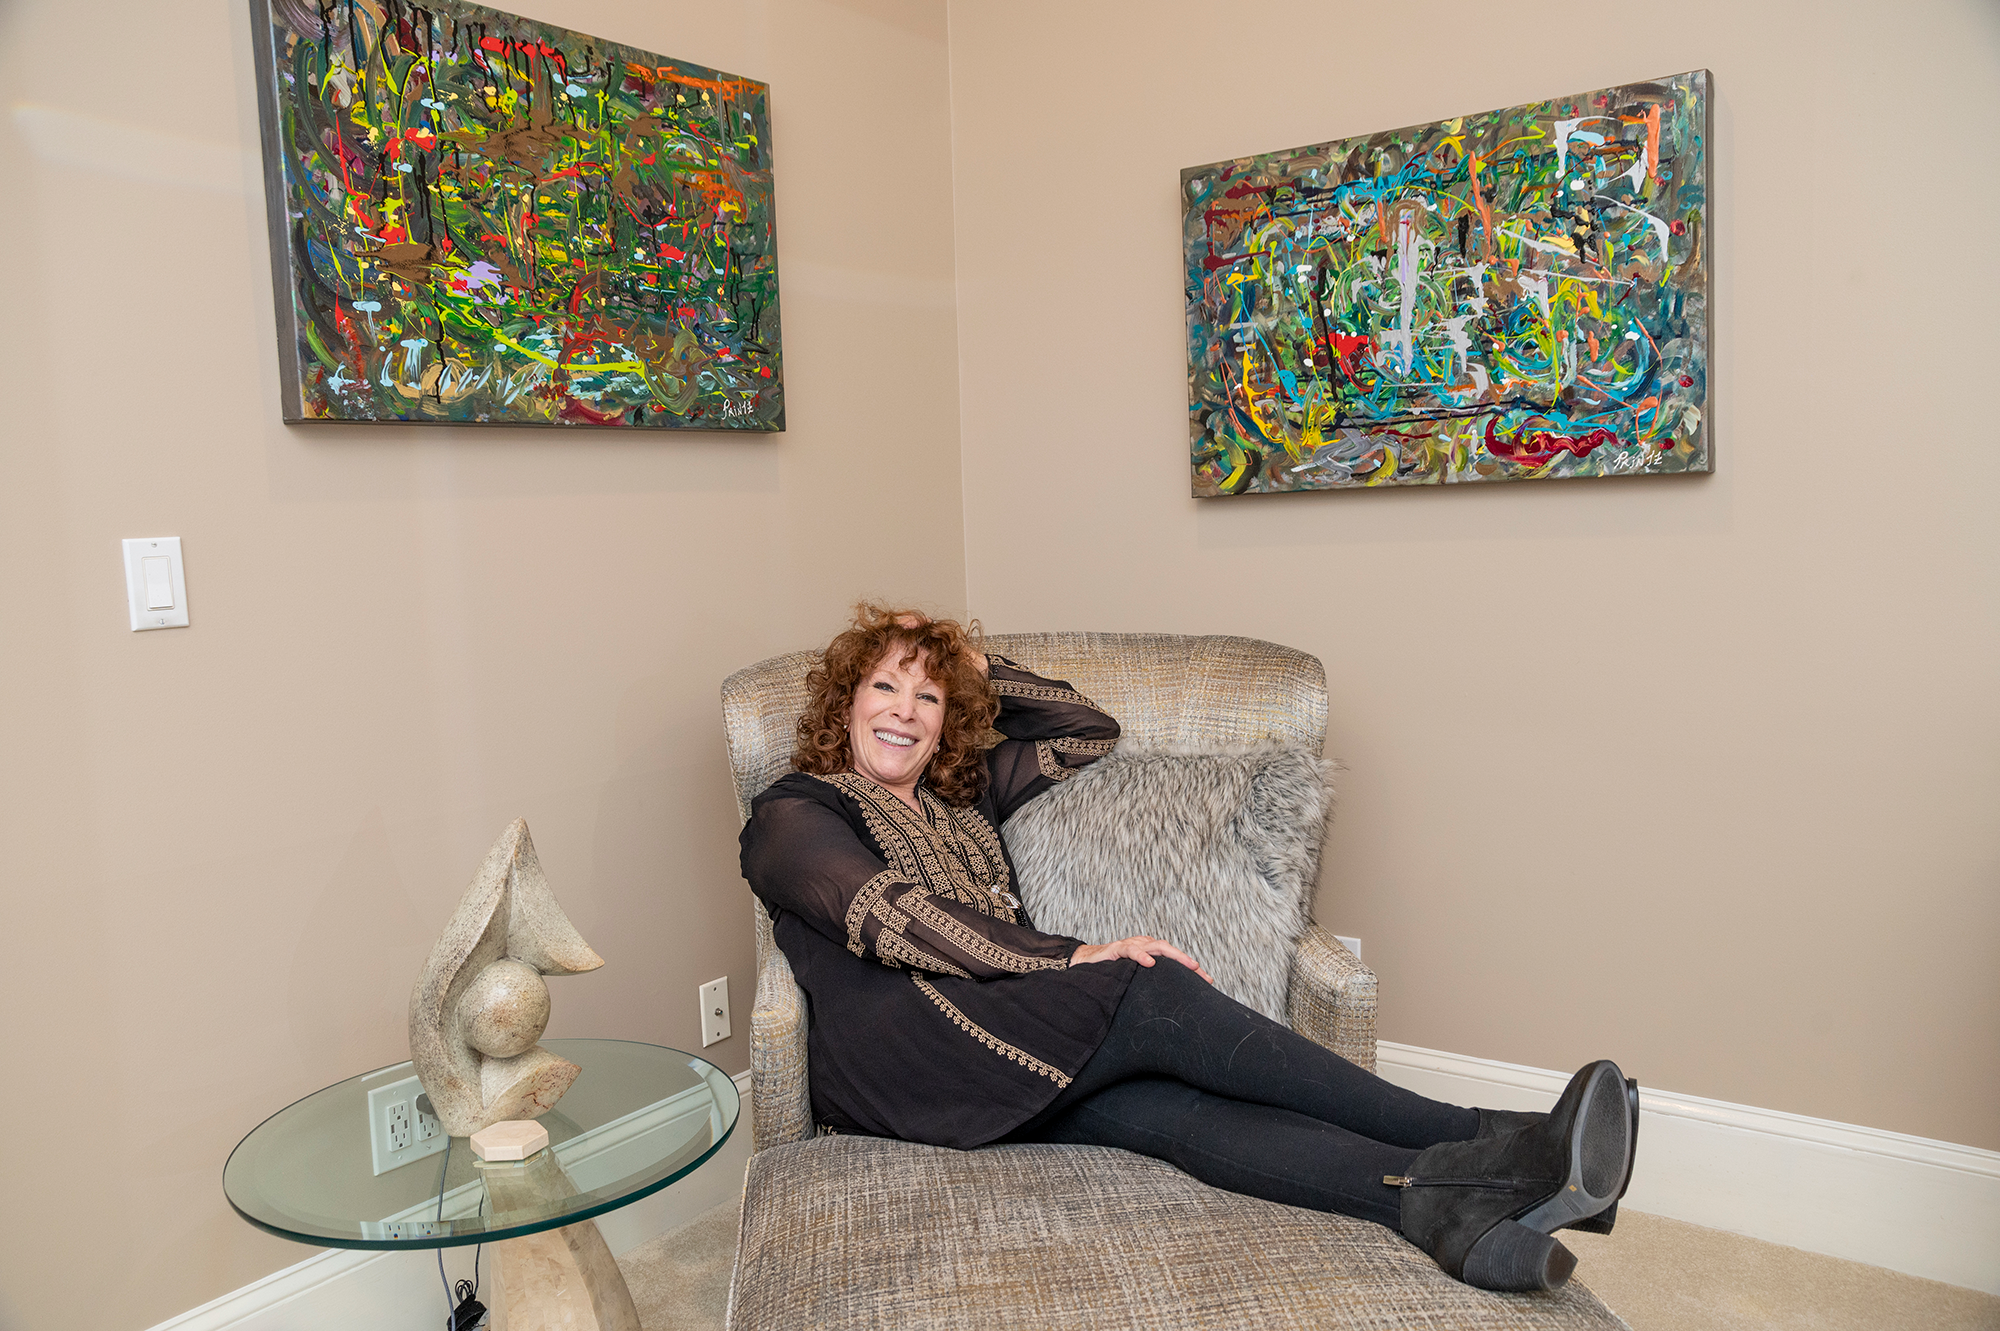 """Duane Stork // Abstract expressionist artist Gayle Printz relaxes with two of her paintings in the background. """"Pond,"""" left, and """"Friend."""" """"Pond"""" was one of the two works selected for the Paris museum display along with """"First."""""""